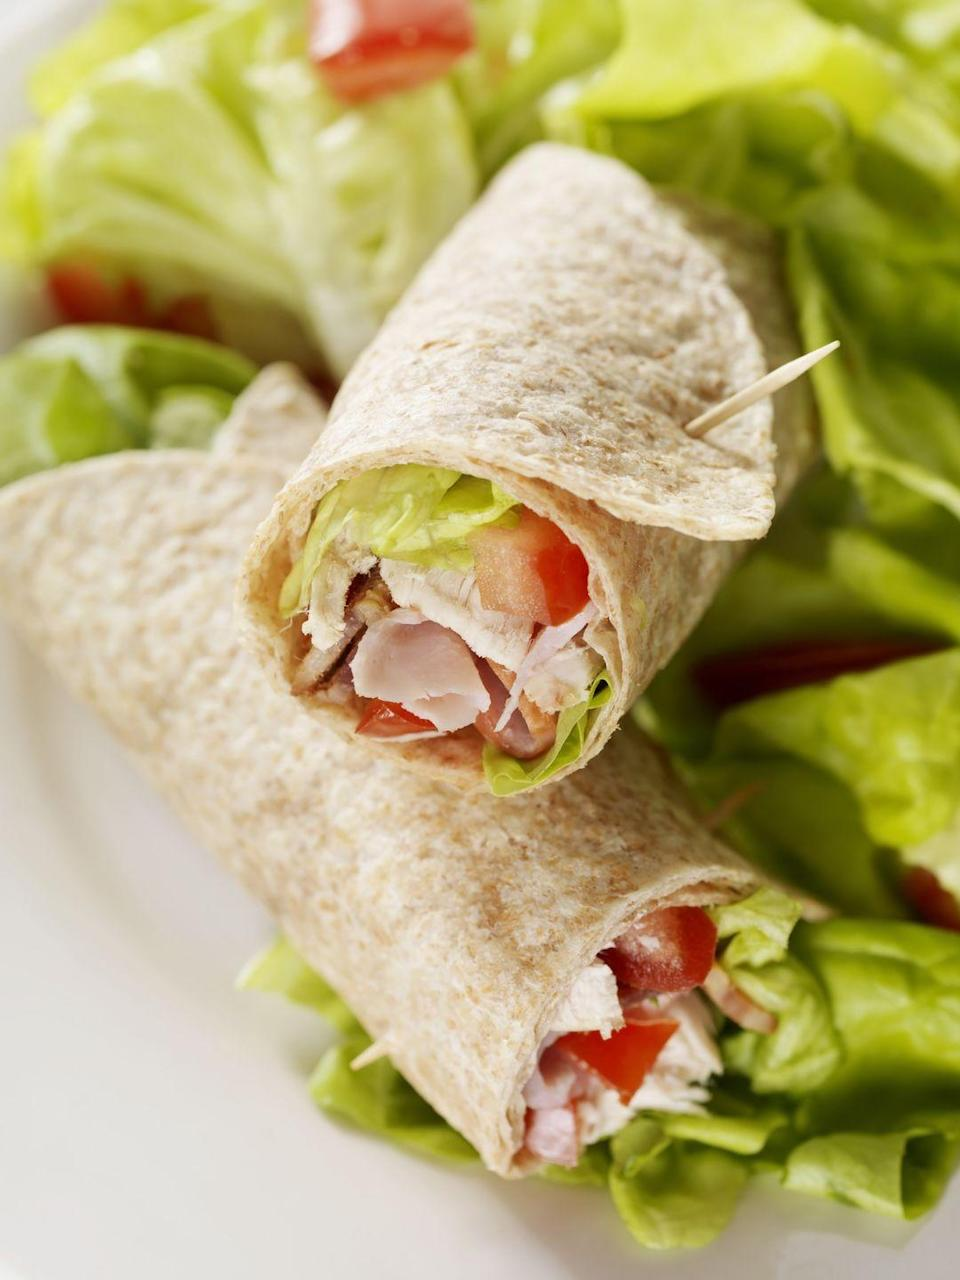 """<p>Make this simple wrap using your leftover turkey for a light and refreshing meal.</p><p><em><a href=""""https://www.womansday.com/food-recipes/food-drinks/recipes/a16456/turkey-melon-wraps-2675/"""" rel=""""nofollow noopener"""" target=""""_blank"""" data-ylk=""""slk:Get the recipe from Woman's Day »"""" class=""""link rapid-noclick-resp"""">Get the recipe from Woman's Day »</a></em></p>"""